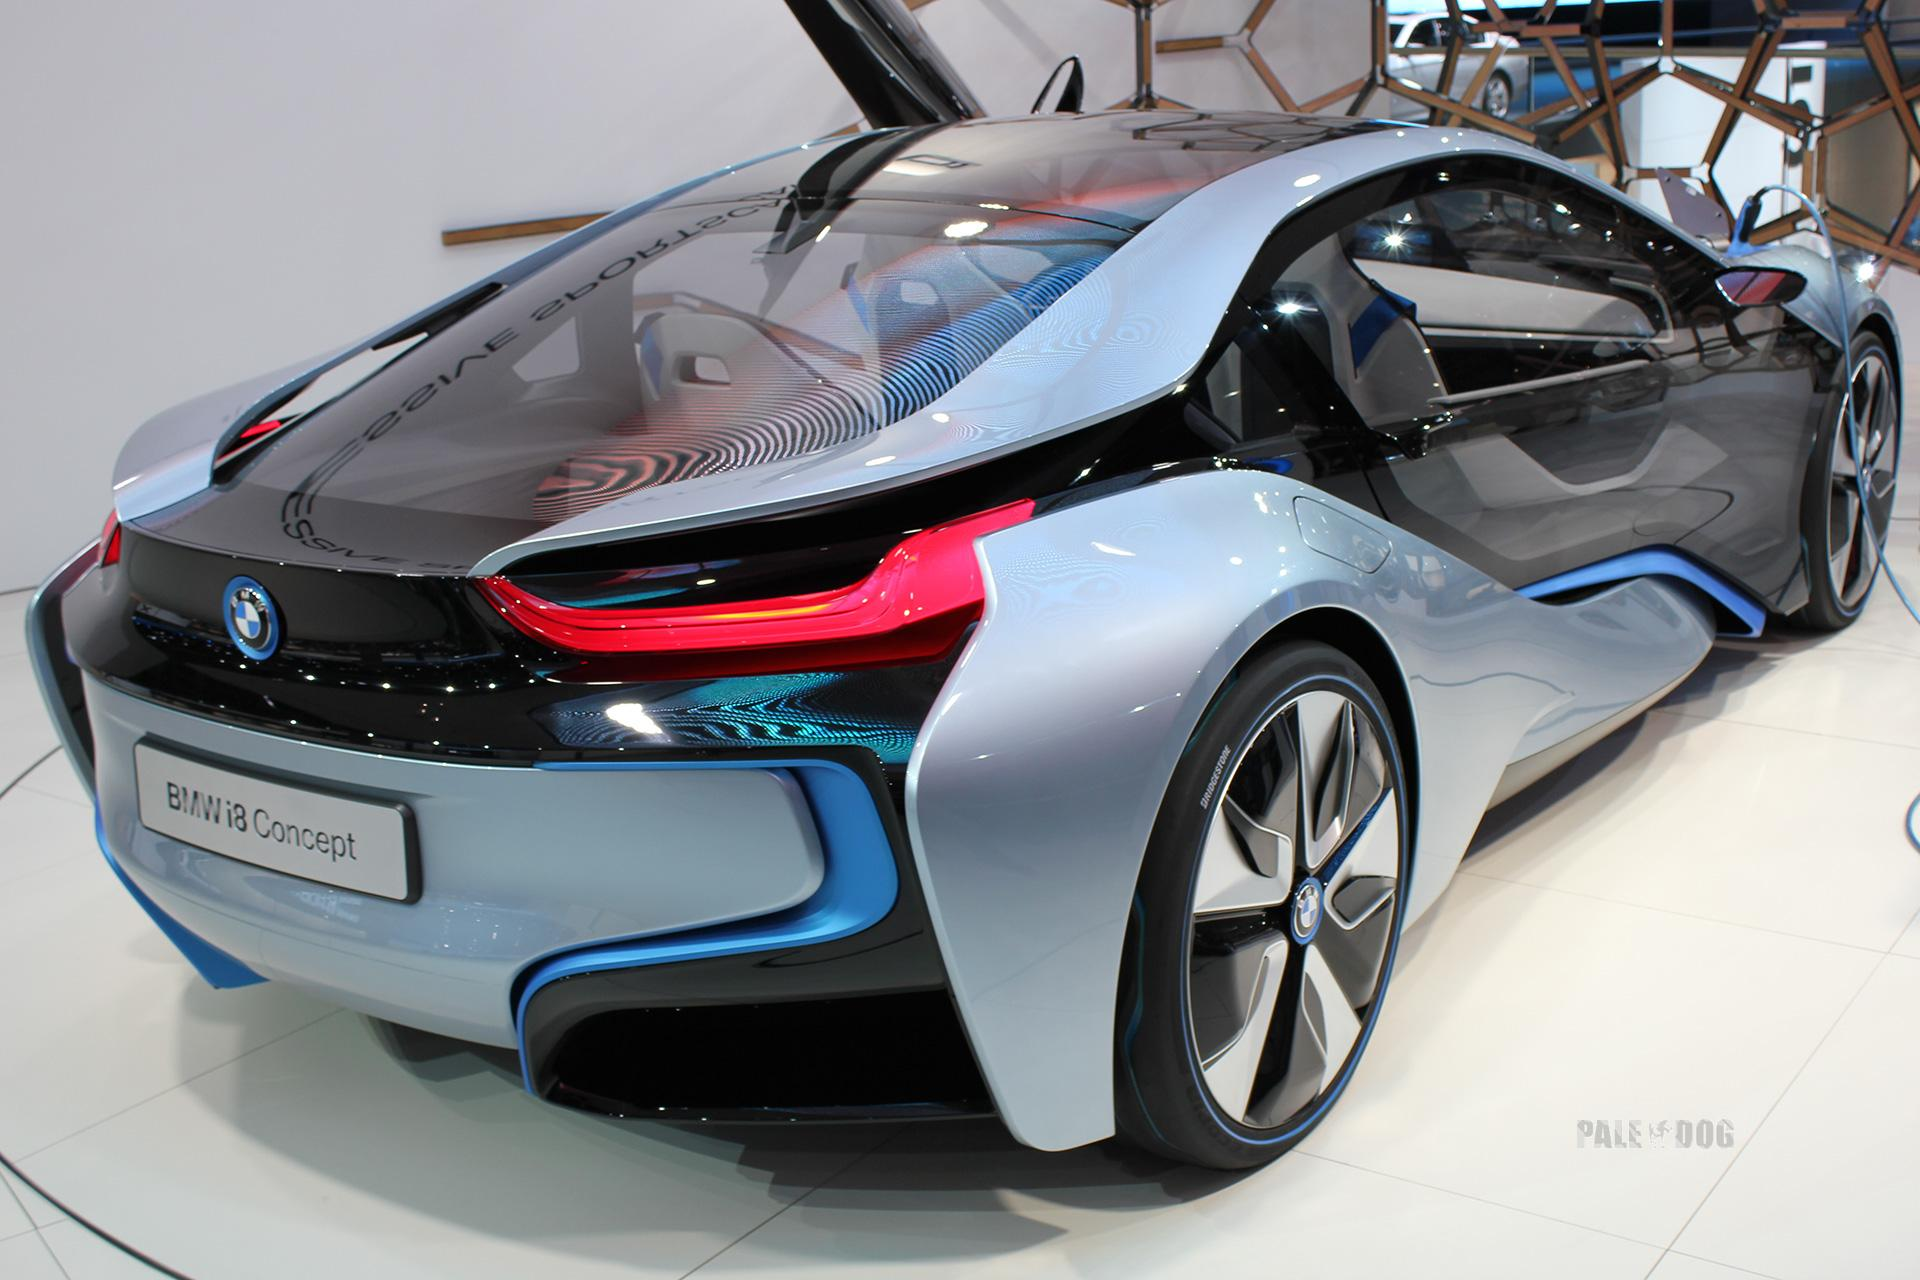 2011 Bmw I8 Concept Rear View 2010s Paledog Photo Collection